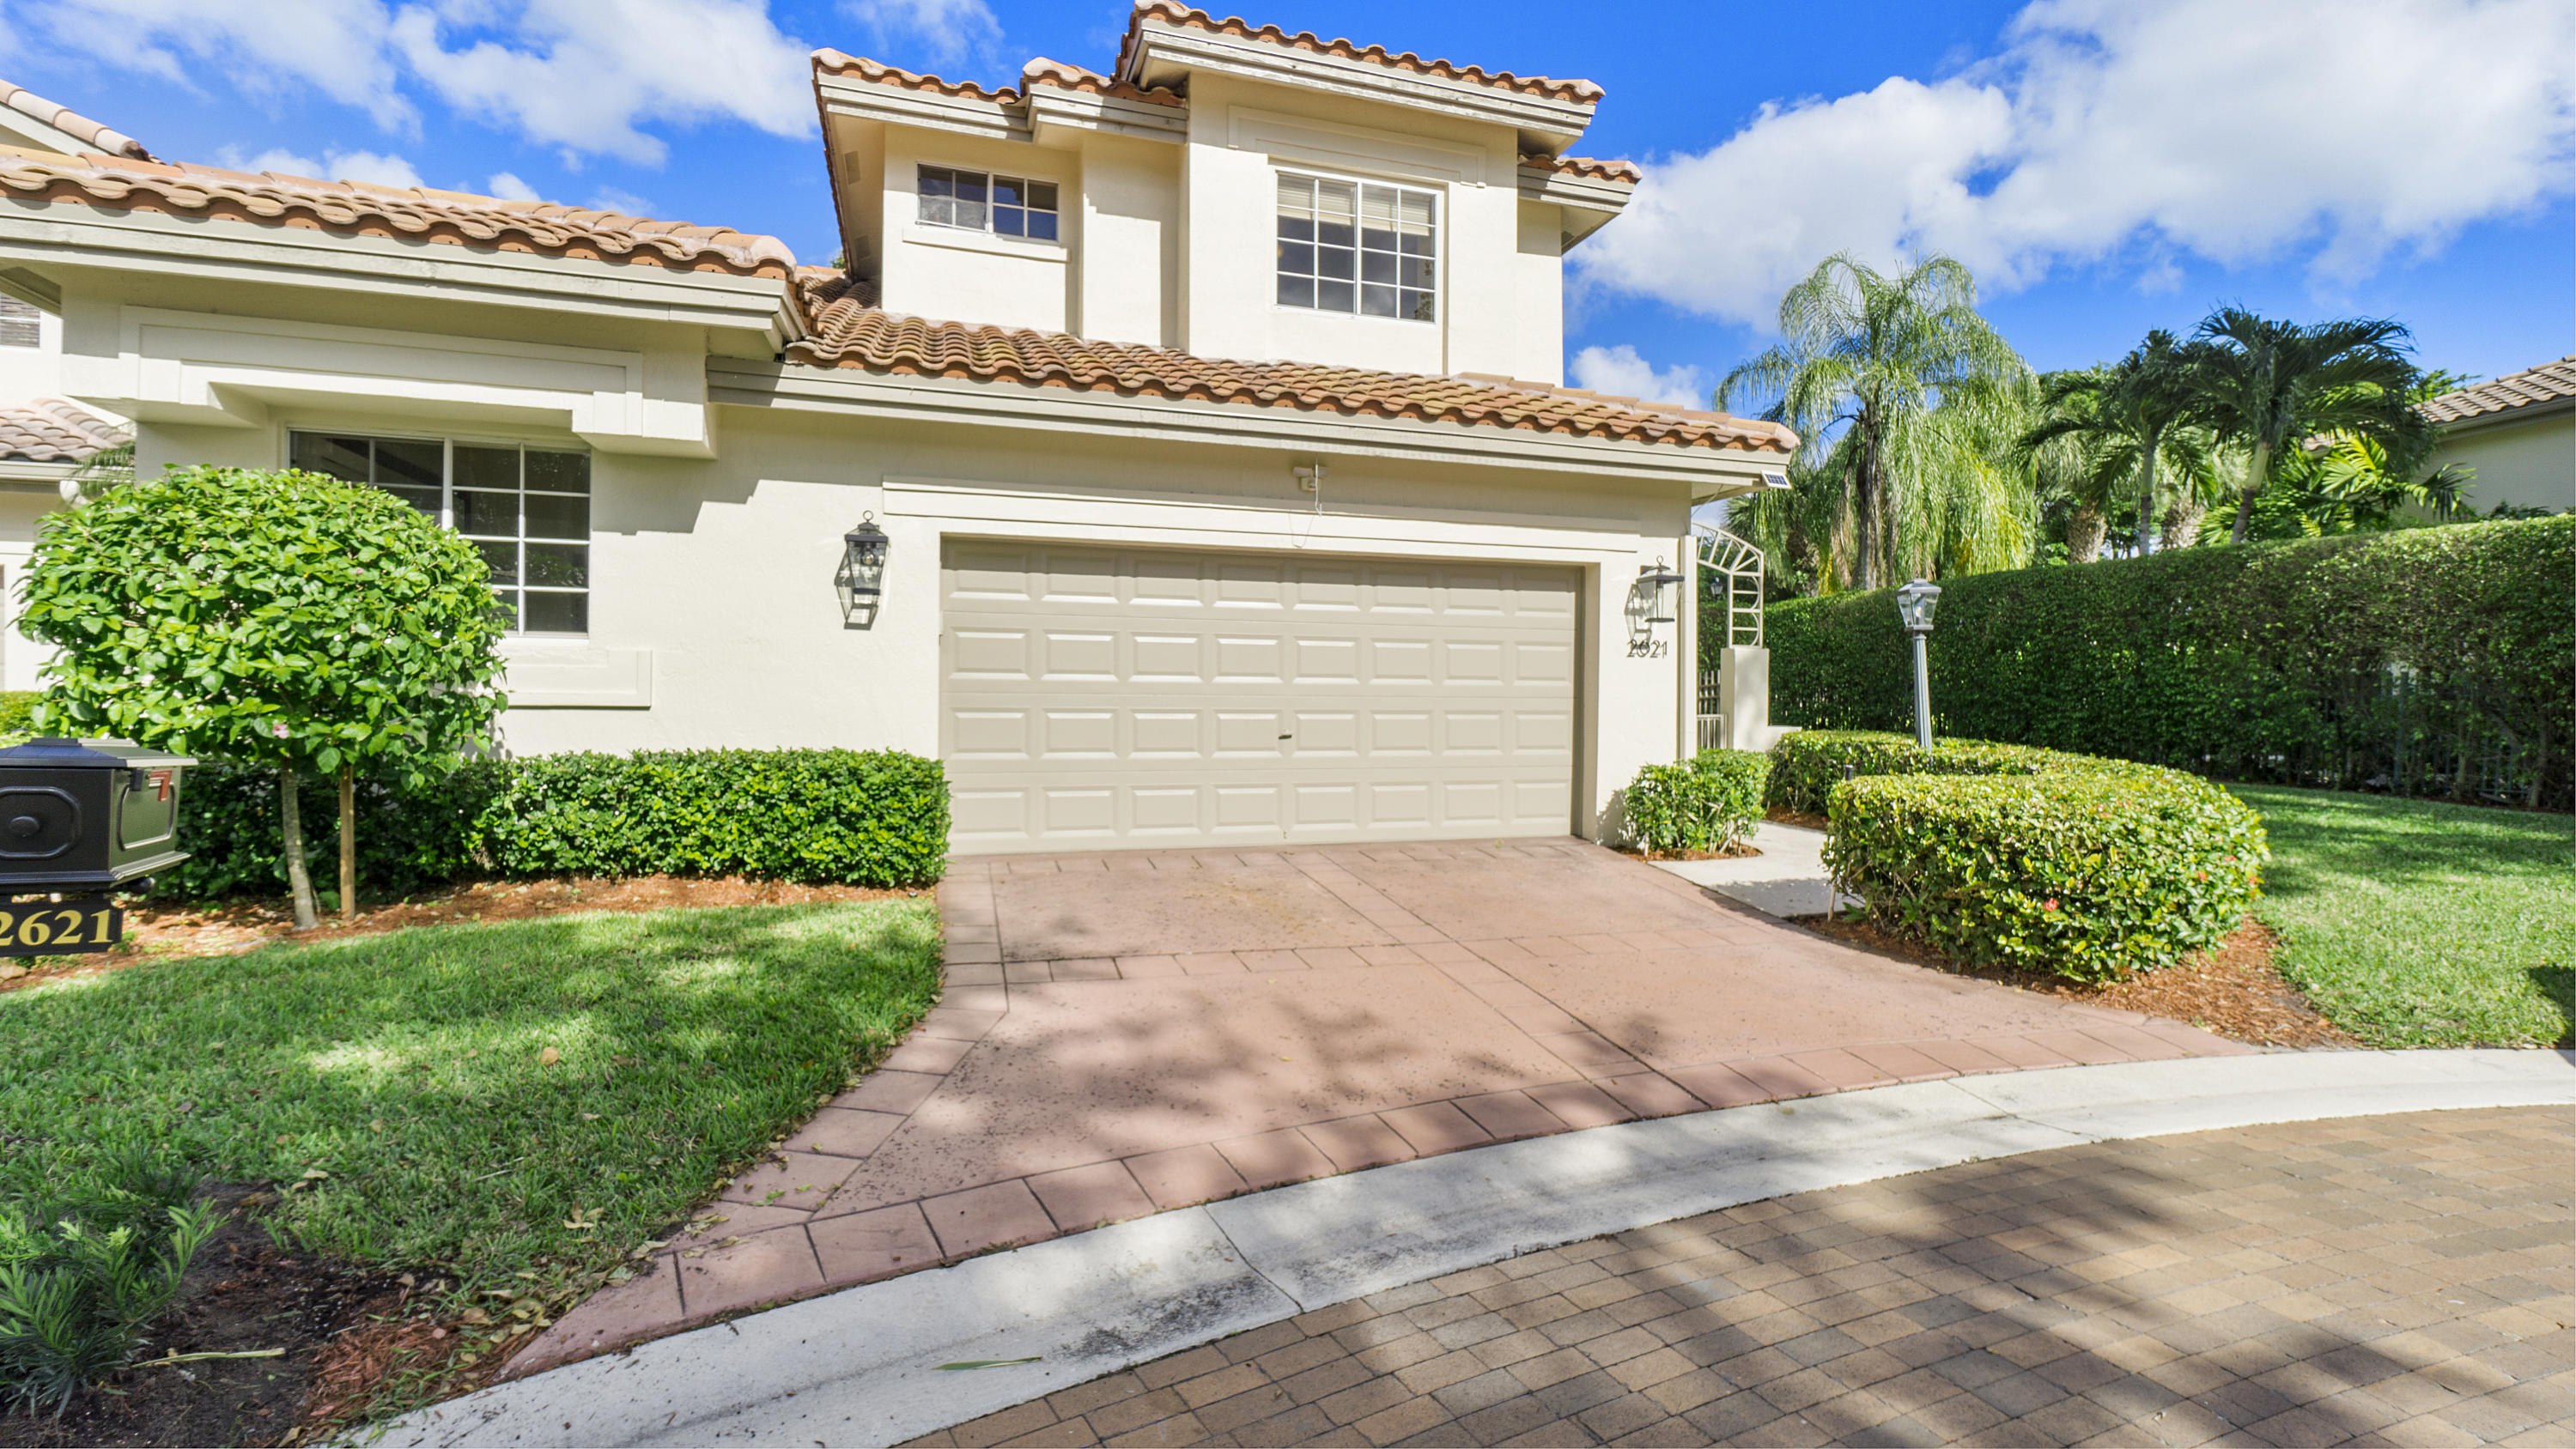 Details for 2621 53rd Drive Nw, Boca Raton, FL 33496